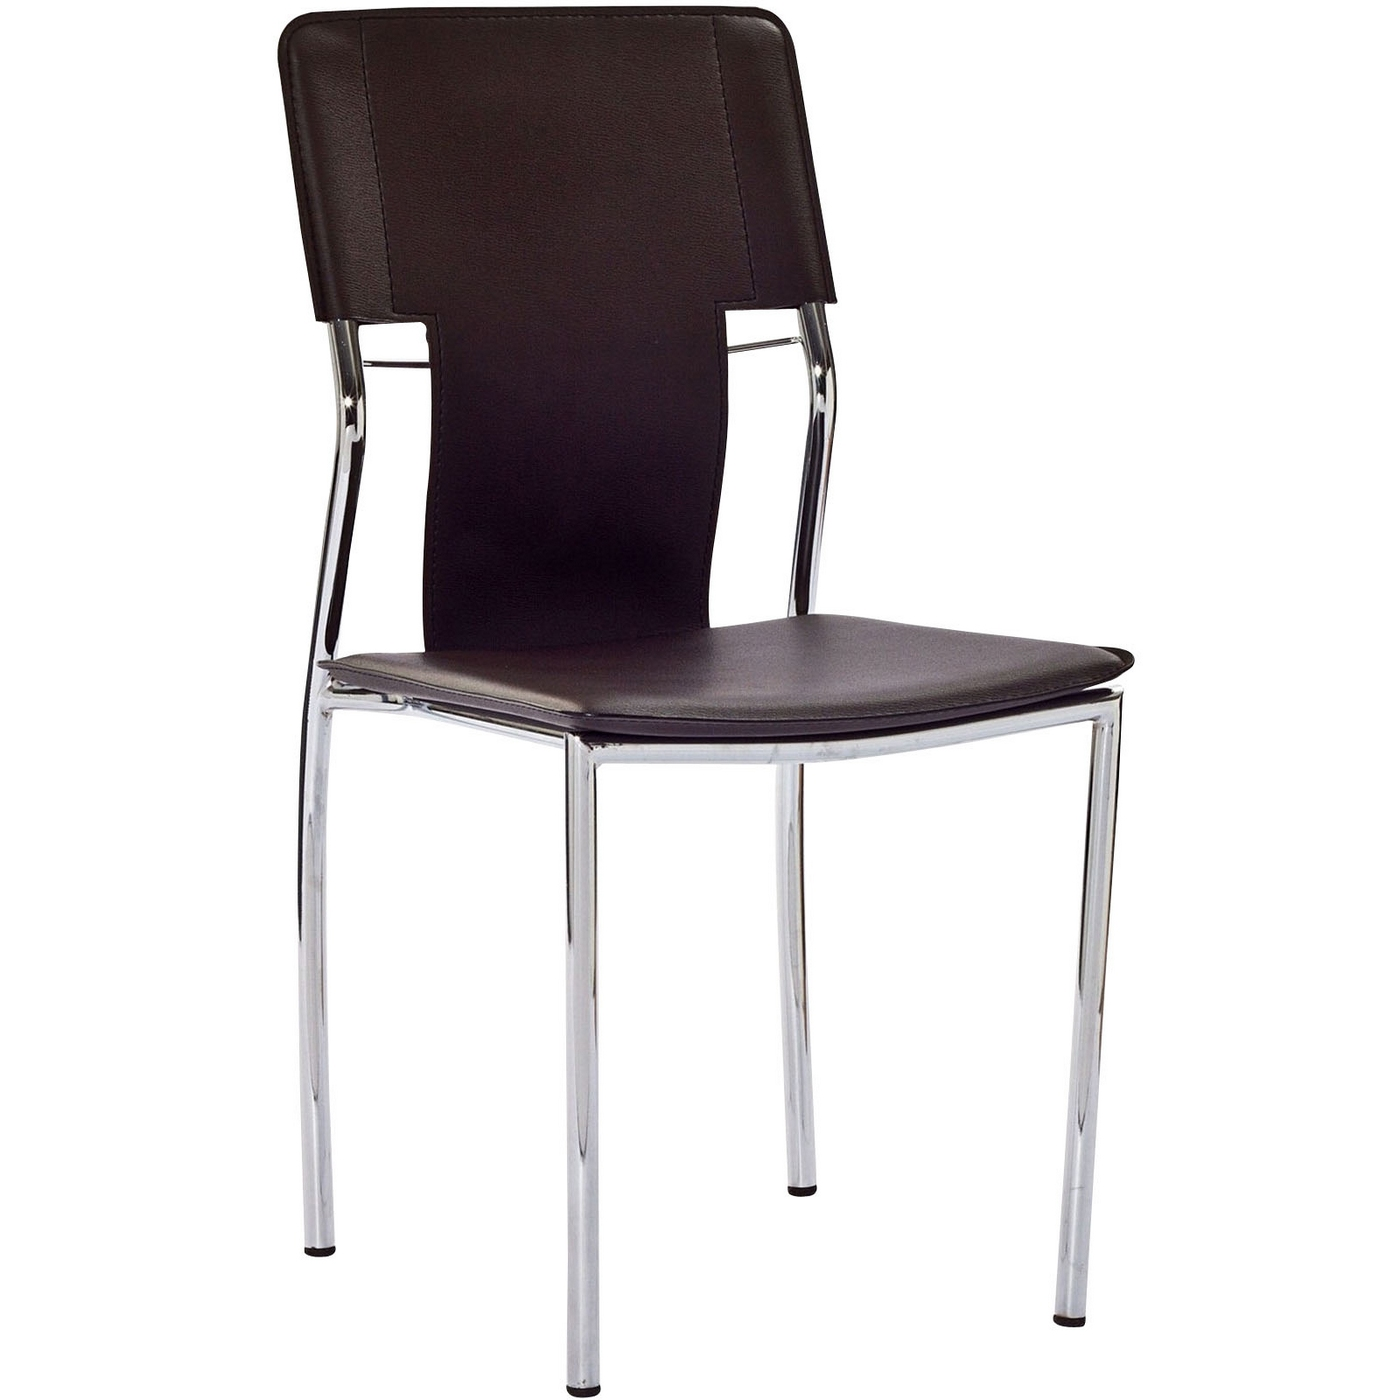 Studio modern vinyl dining side chair with chrome frame brown for Modern chrome dining chairs